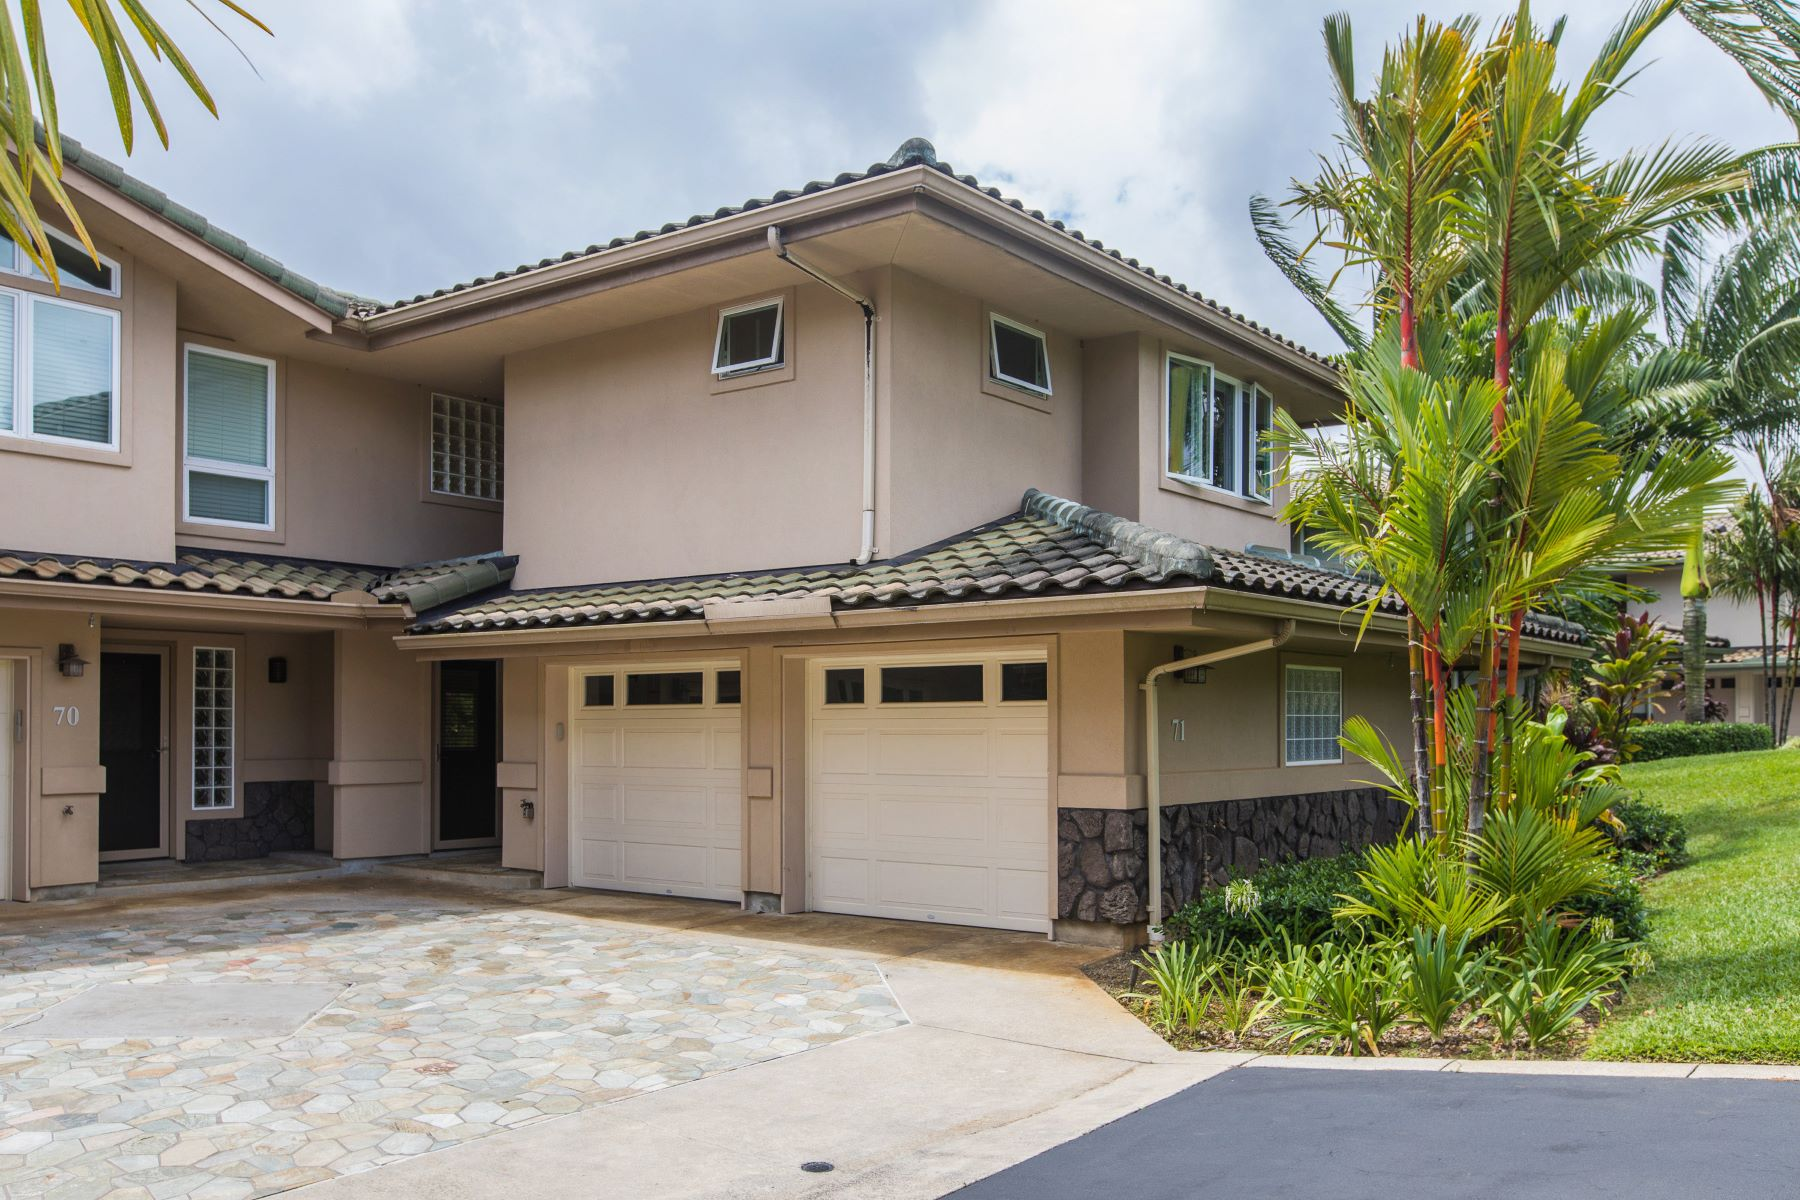 콘도미니엄 용 매매 에 Beautiful, Modern 2 Bedroom, 2 1/2 Bathroom Condominium on Kauai's North Shore 4100 Queen Emma Drive #71 Princeville, 하와이 96722 미국